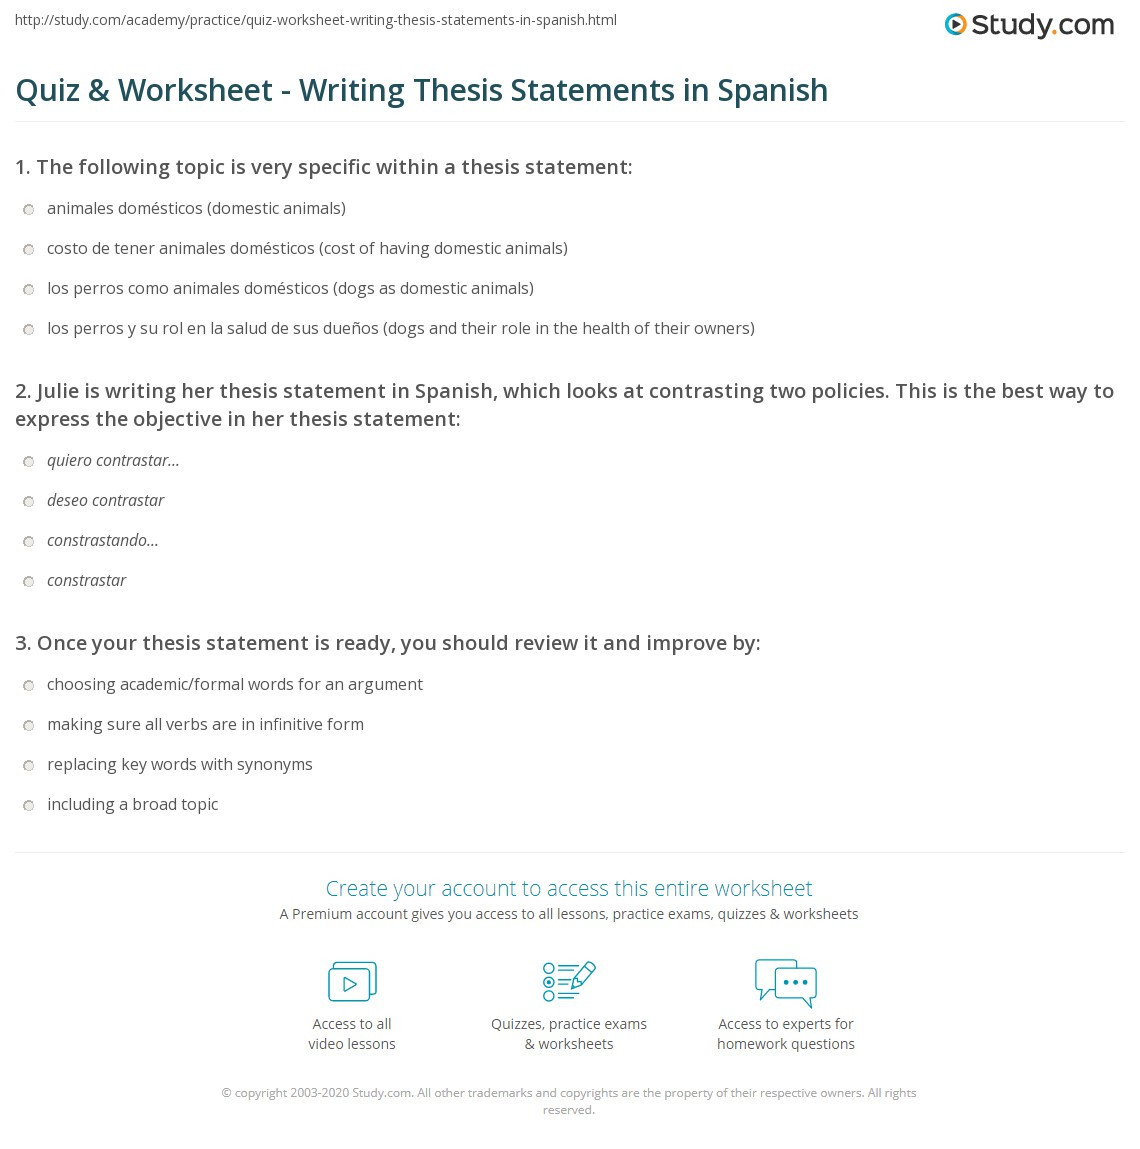 quiz worksheet writing thesis statements in spanish